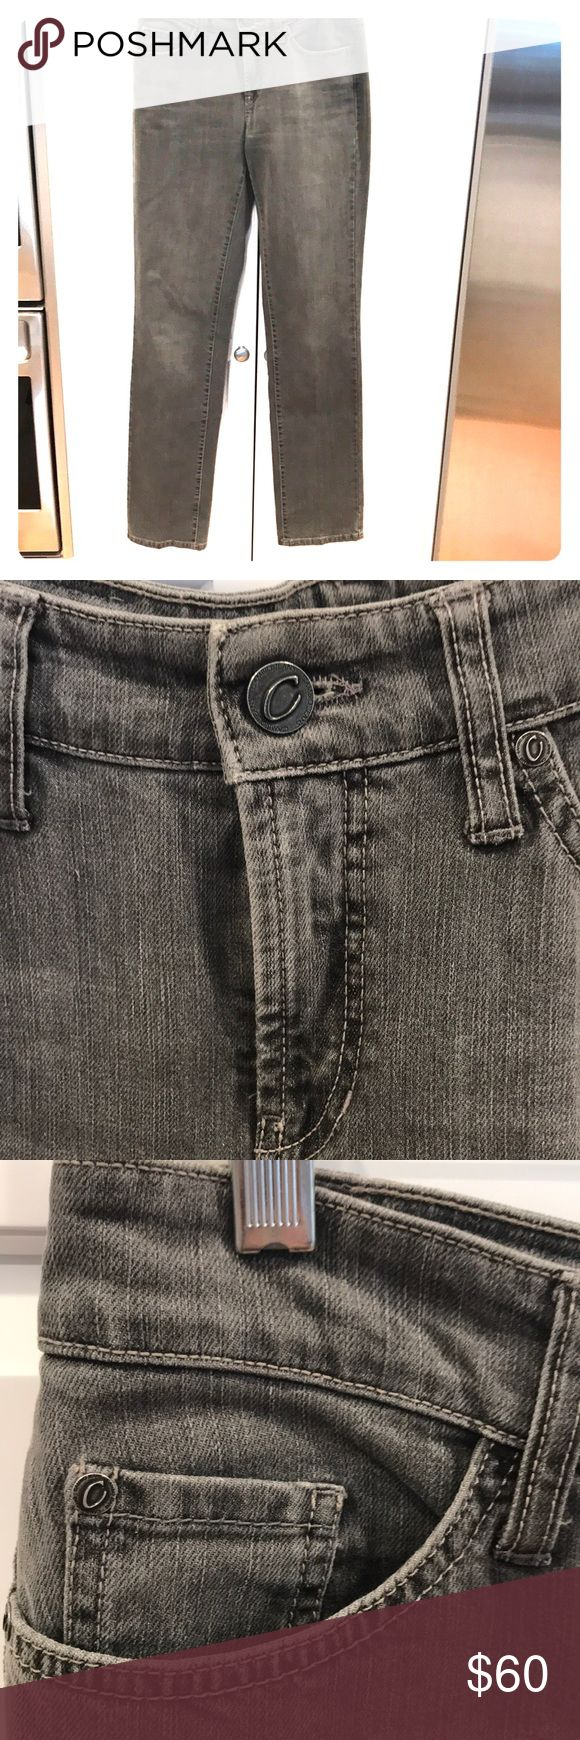 Cambio jeans. Grey stretch.Norah super slim 8 Cambio Jeans. Norah super slim 5 pocket stretch.   Embellished  back pockets. Never worn. Grey. Size 8 Cambio Jeans Jeans Skinny